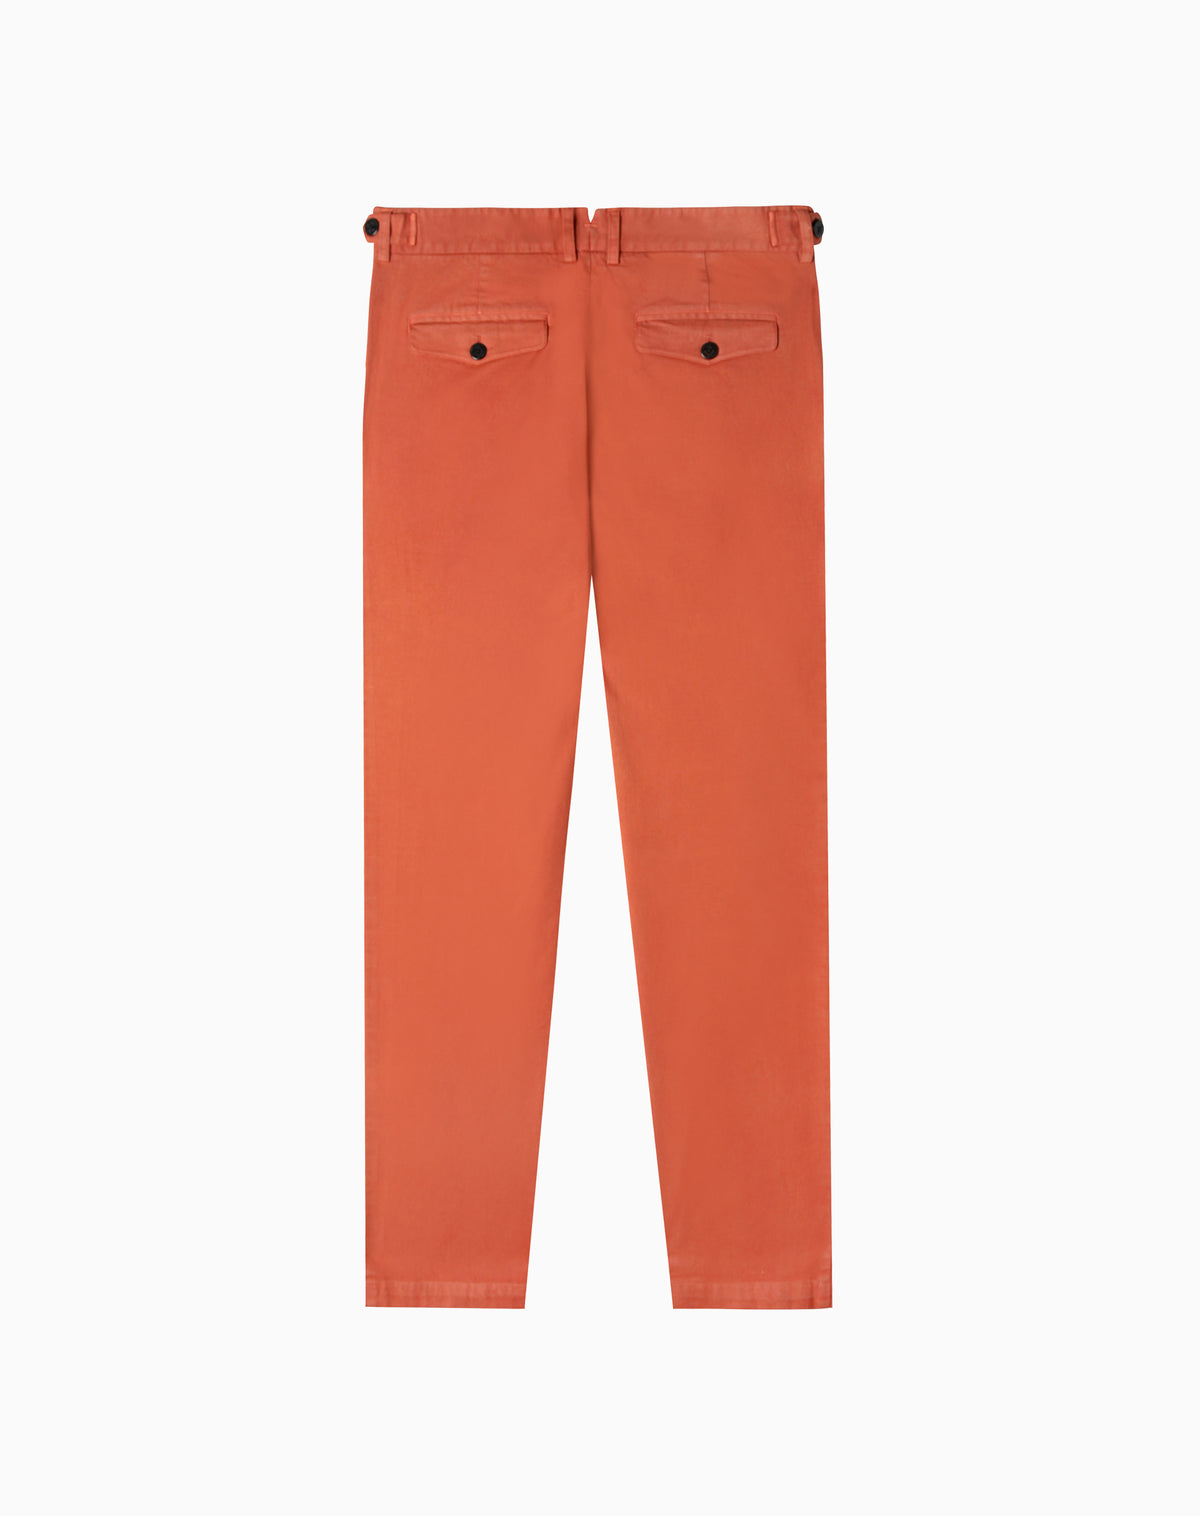 Gates Pant in Weather Red